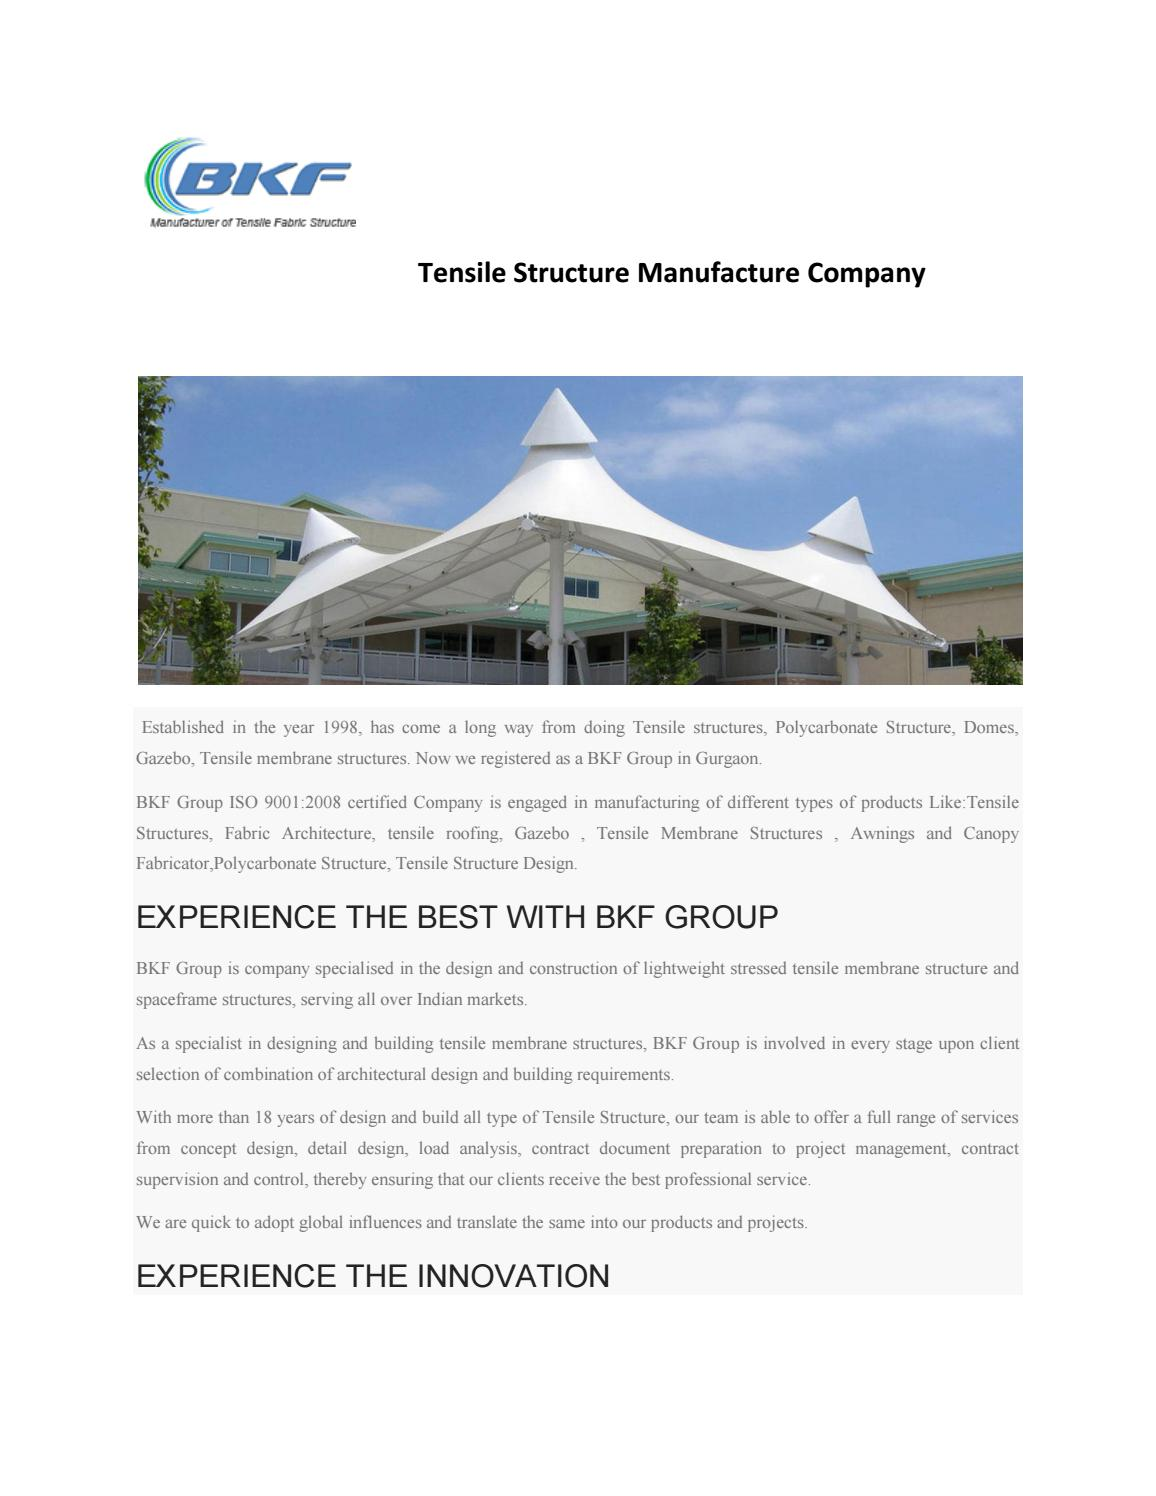 Tensile structure manufacture company in India by Tensile Structure